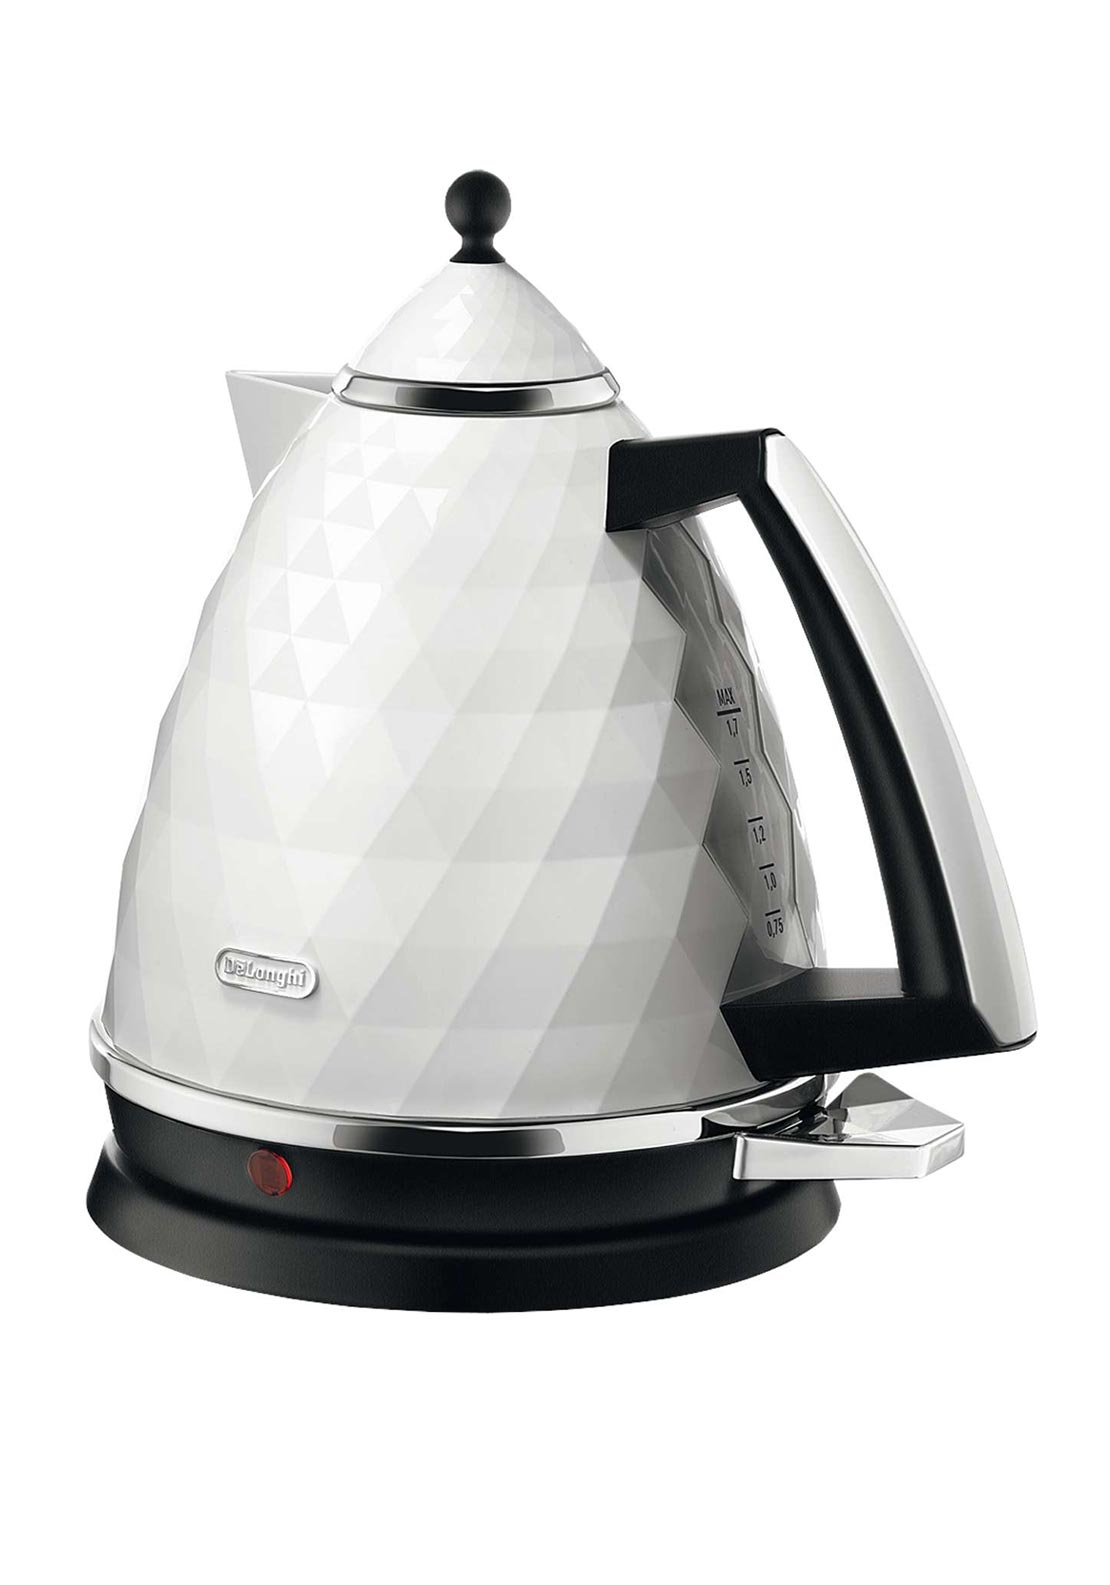 DeLonghi Brillante Design Electric Kettle, White